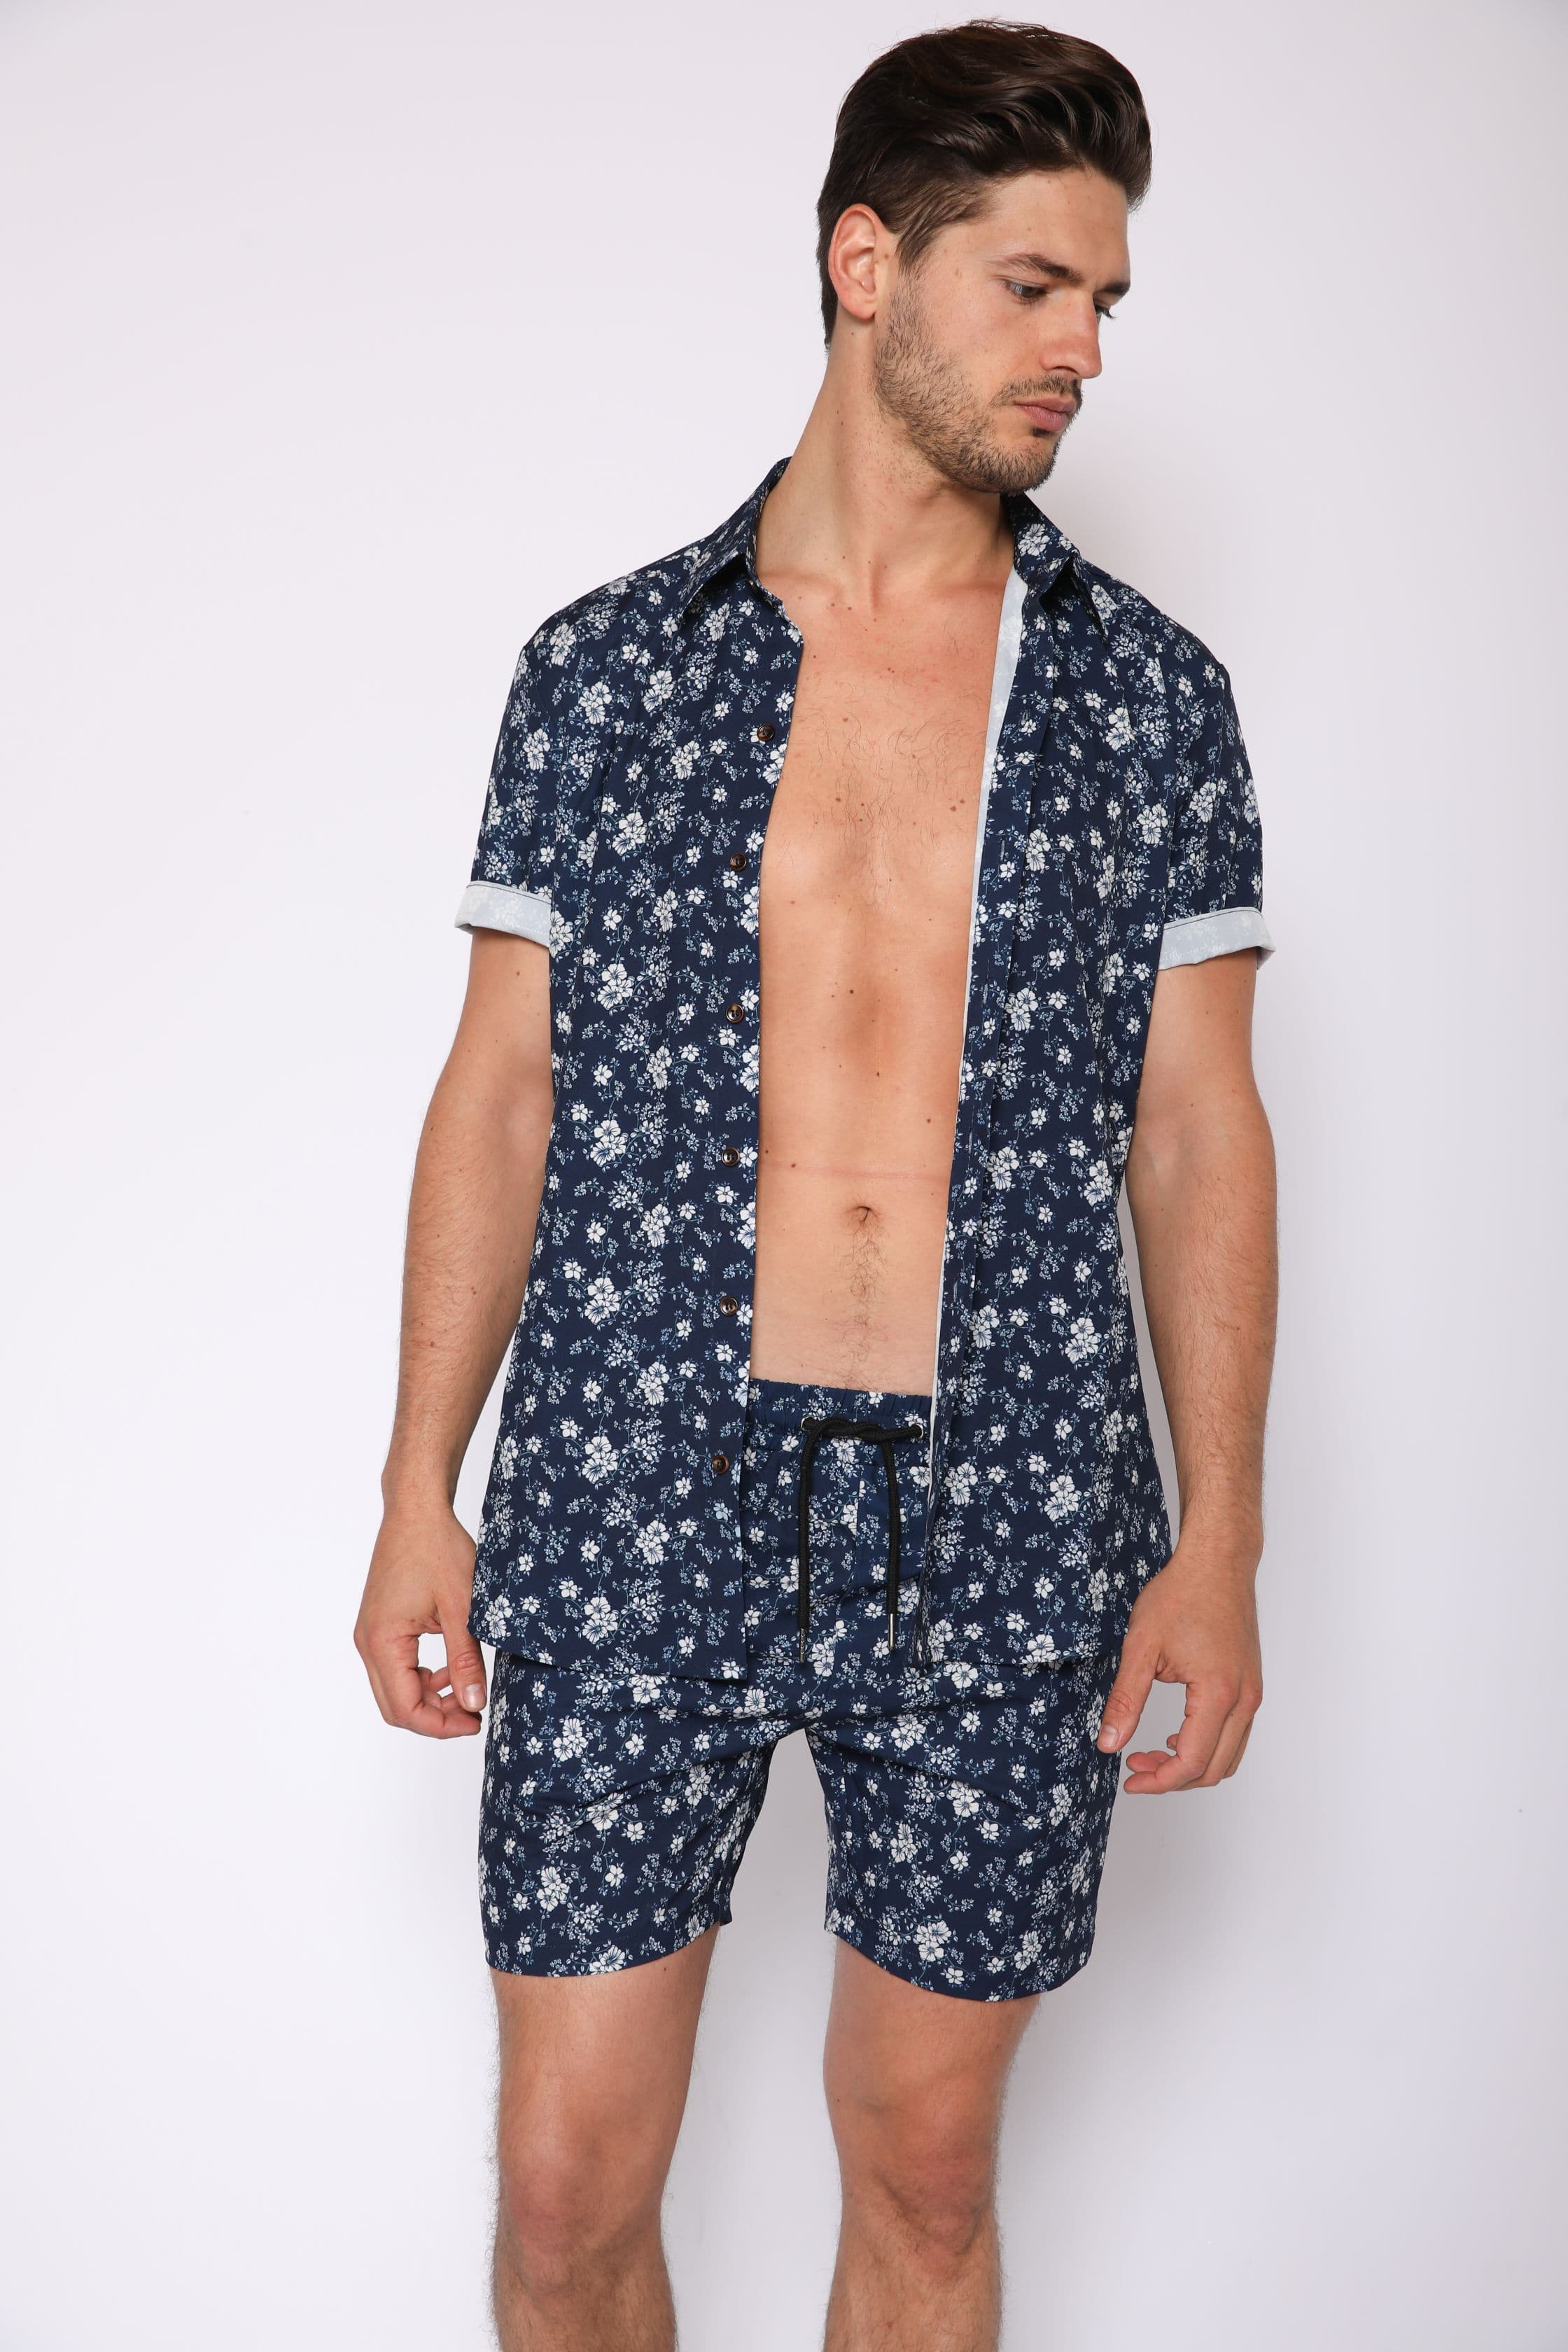 Two Piece Navy Floral Print - RomperJack, Men's Romper - Male Romper